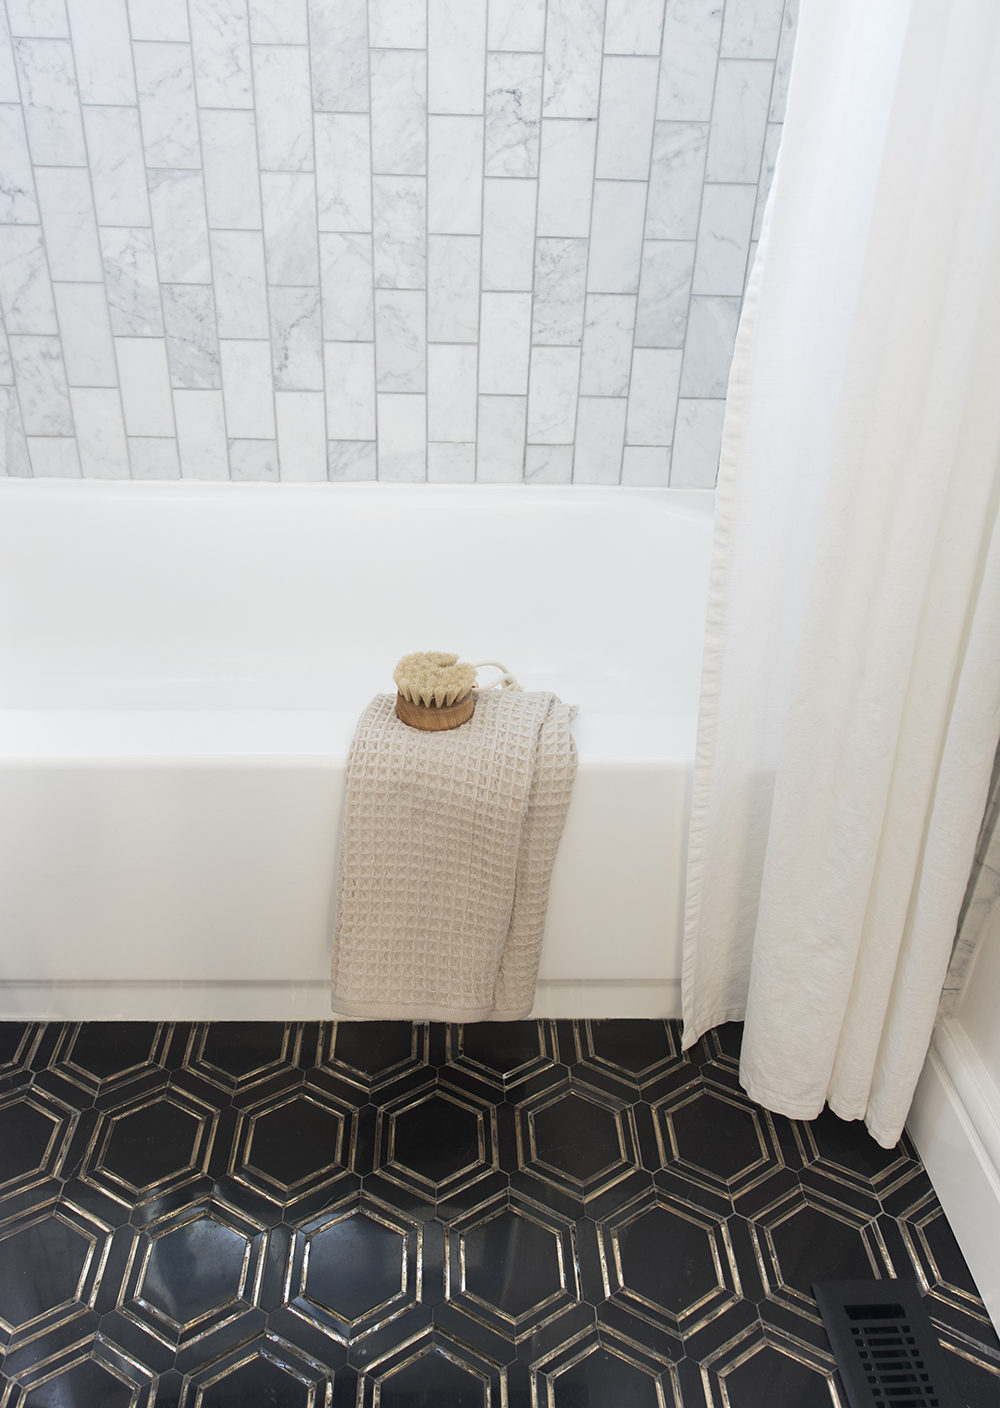 Marble Bathroom with Black and Gold Hex Floor Tile - Room For Tuesday